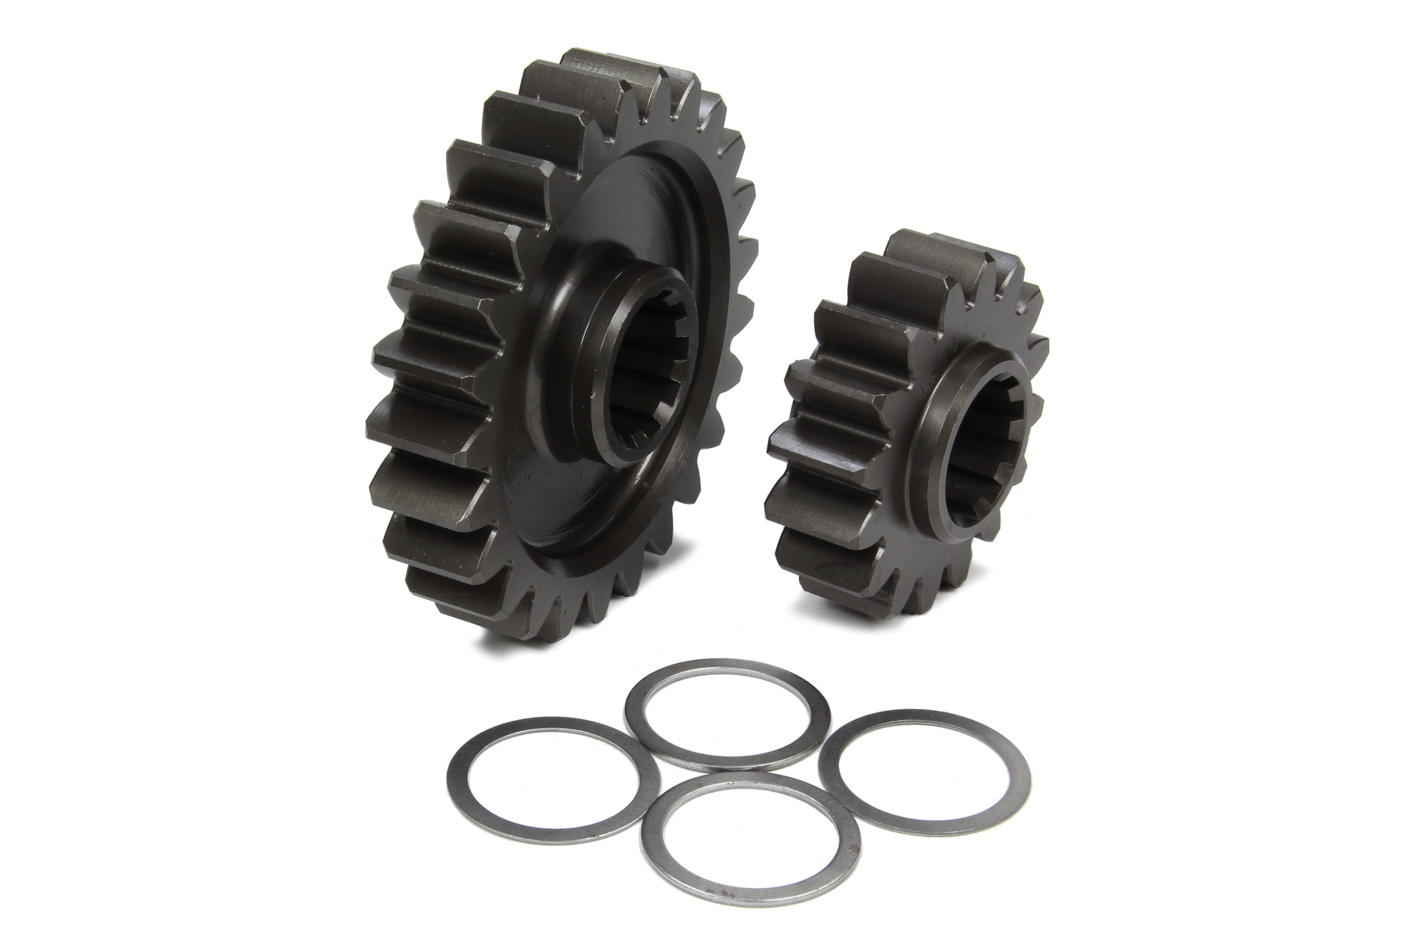 Coleman Machine 207-43 Quick Change Gear Set, Pro-Lite, Set 43, 10 Spline, 4.11 Ratio 6.42 / 2.63, 4.86 Ratio 7.59 / 3.11, Steel, Each